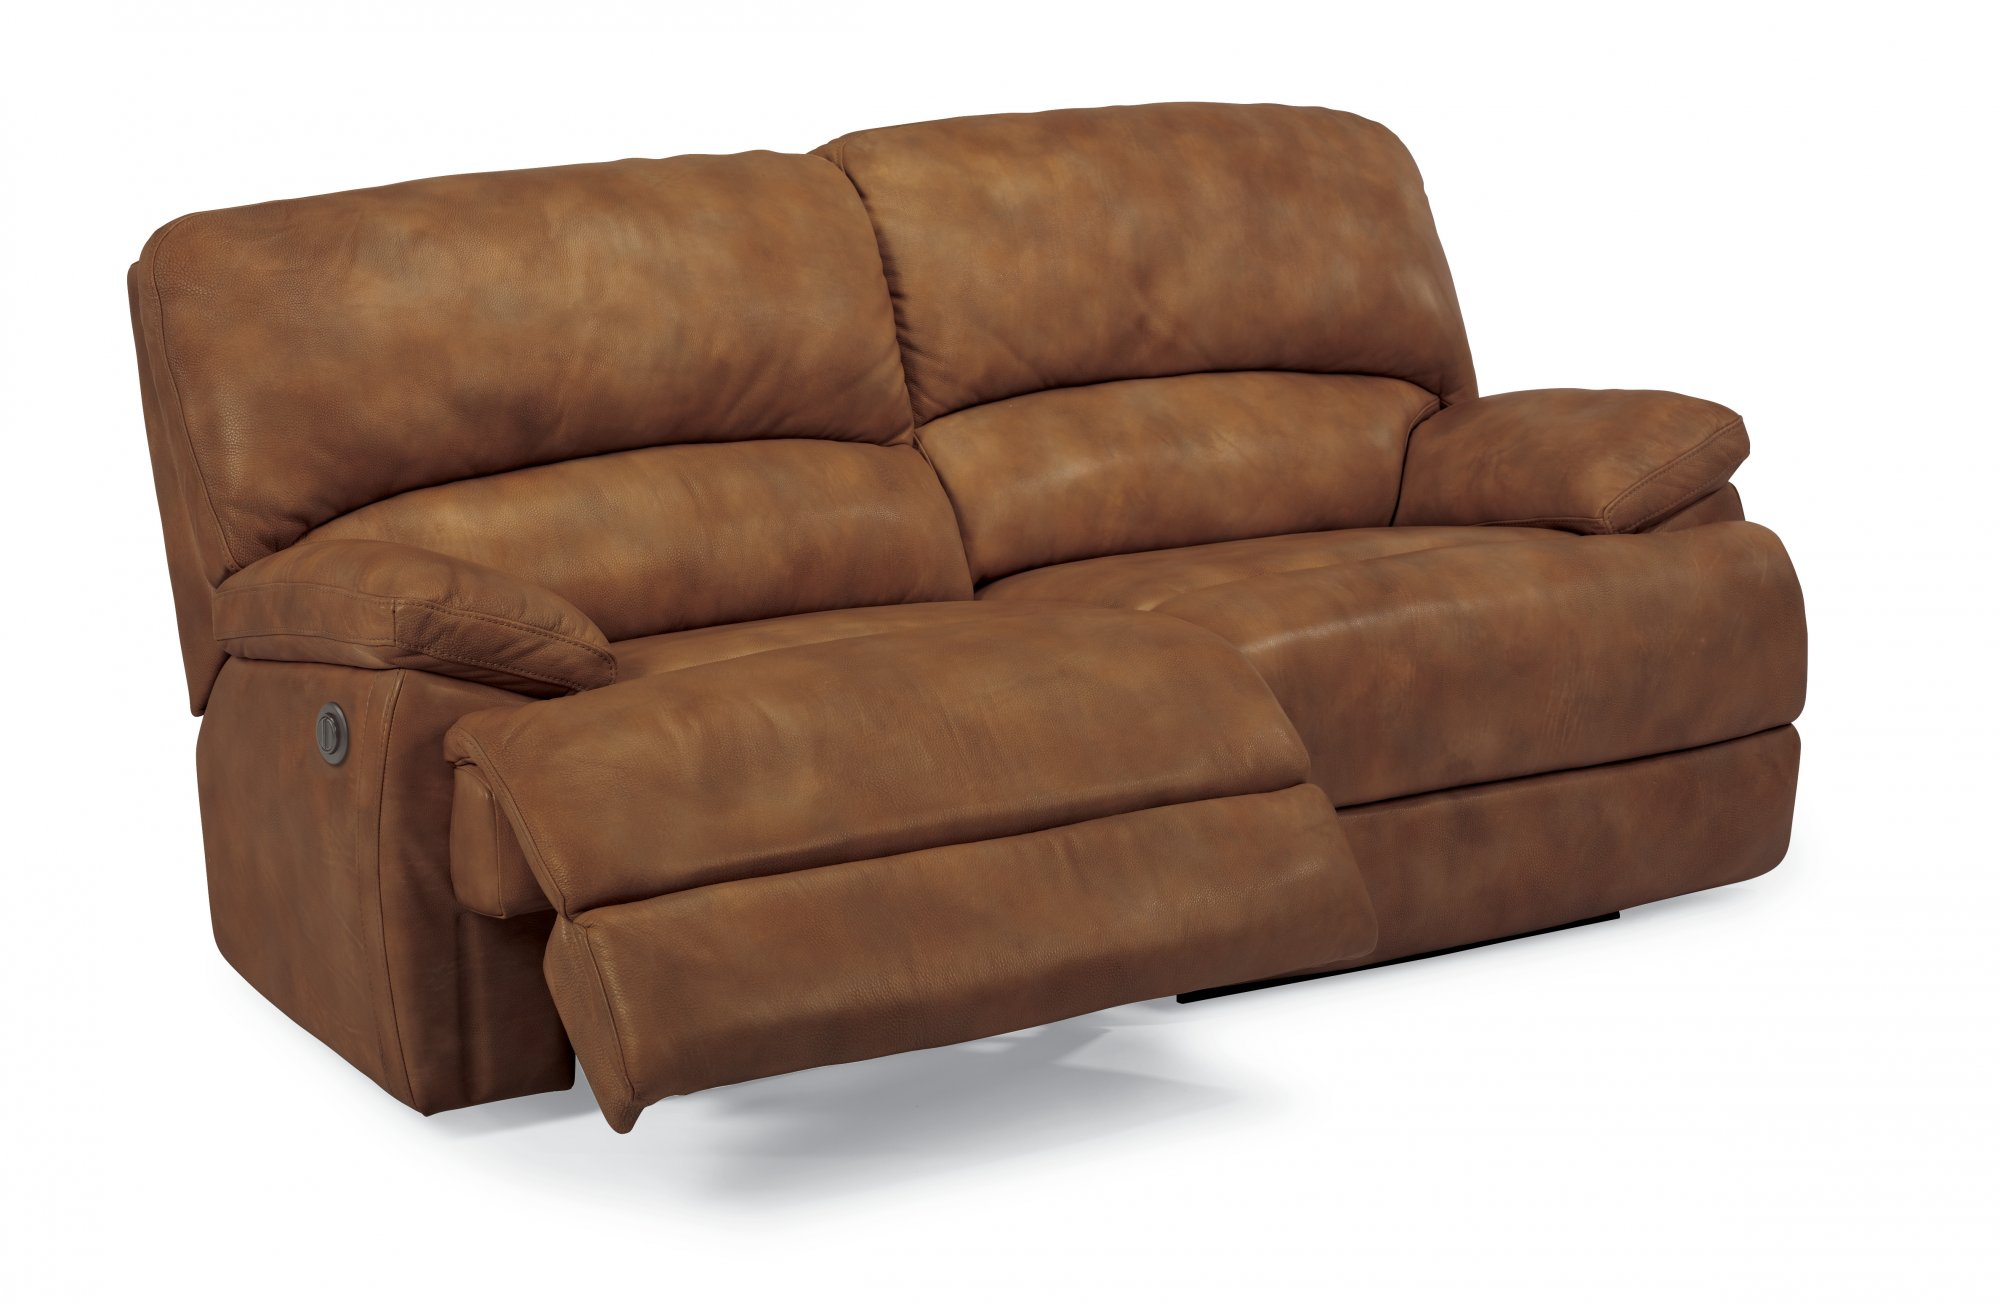 Flexsteel - 1927-62P - Dylan Leather Two-Cushion Power ...